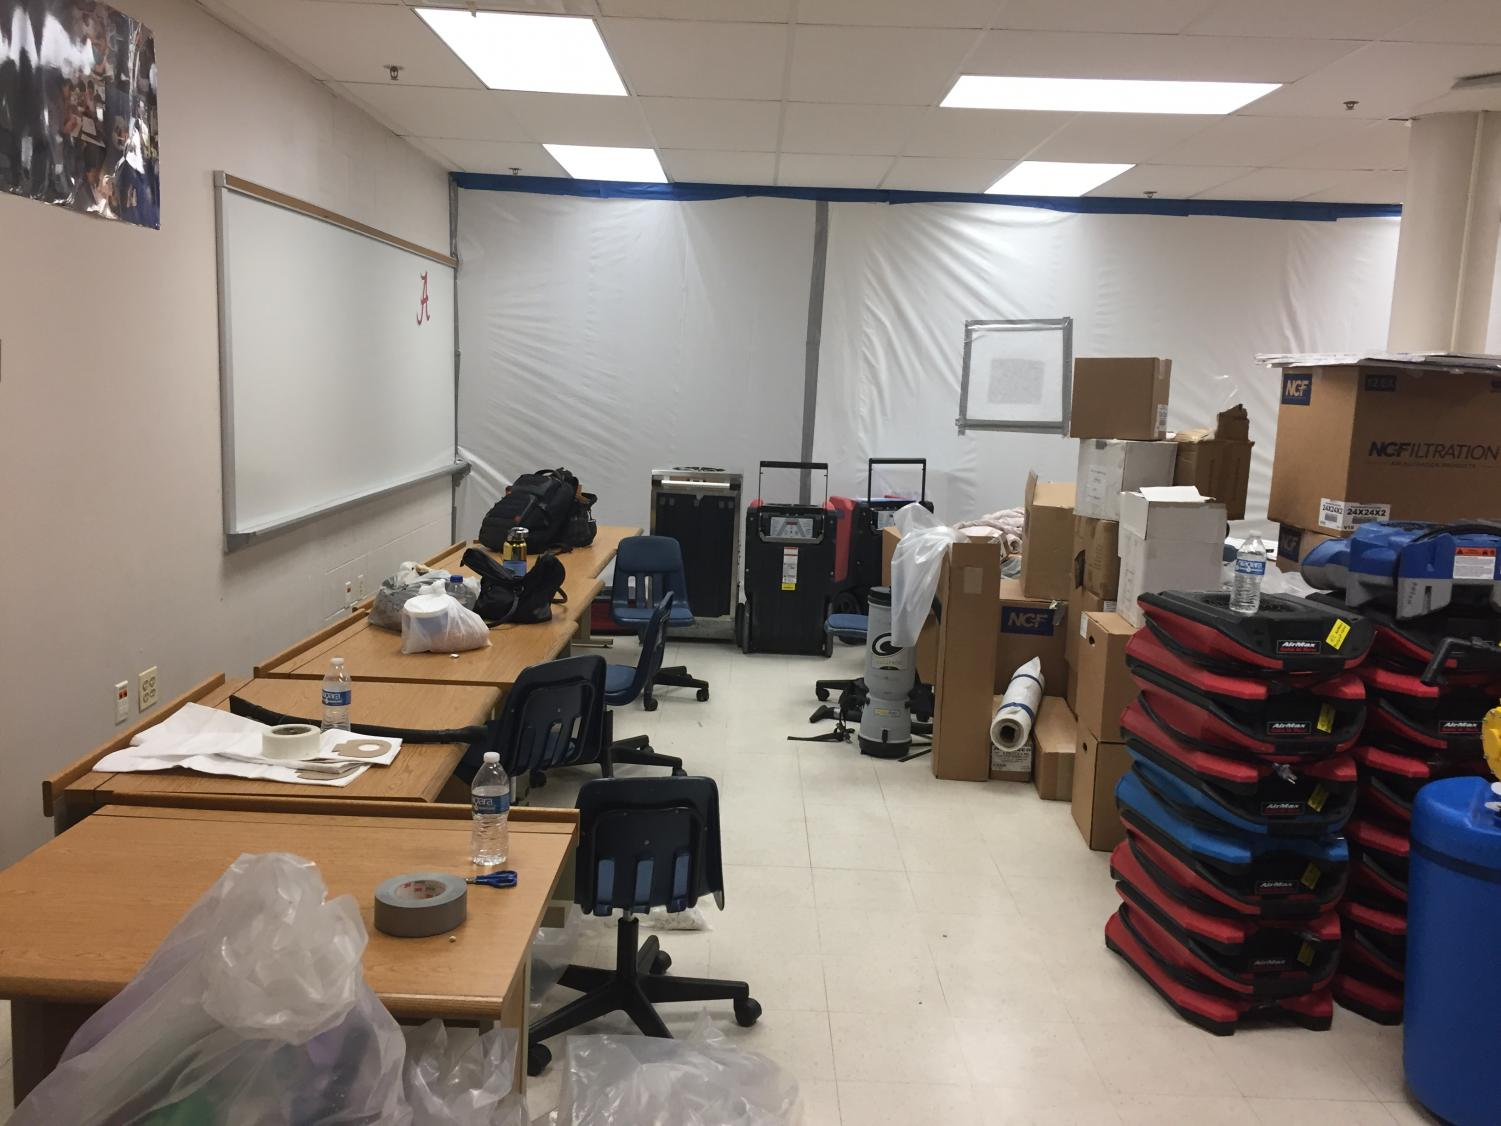 Most of the computer science classrooms are in the process of being repaired.